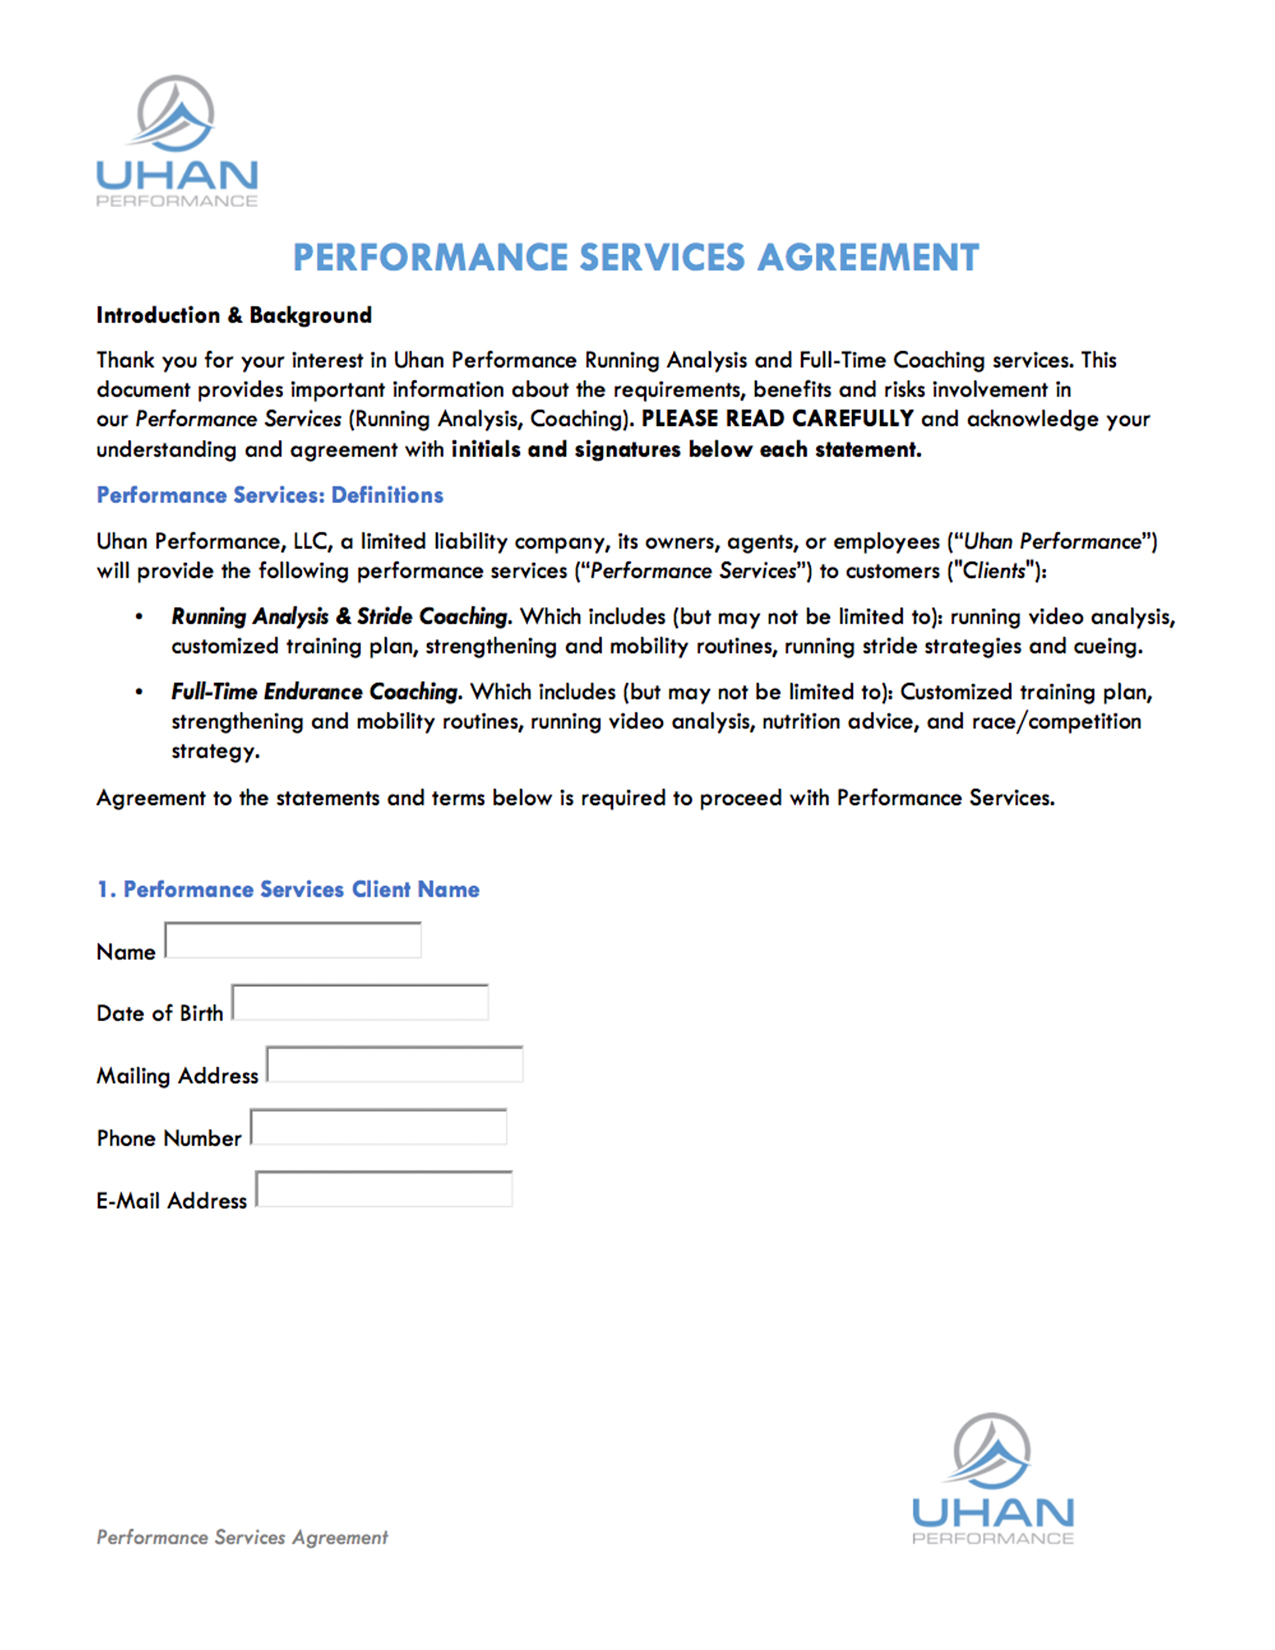 Performance Services Agreement